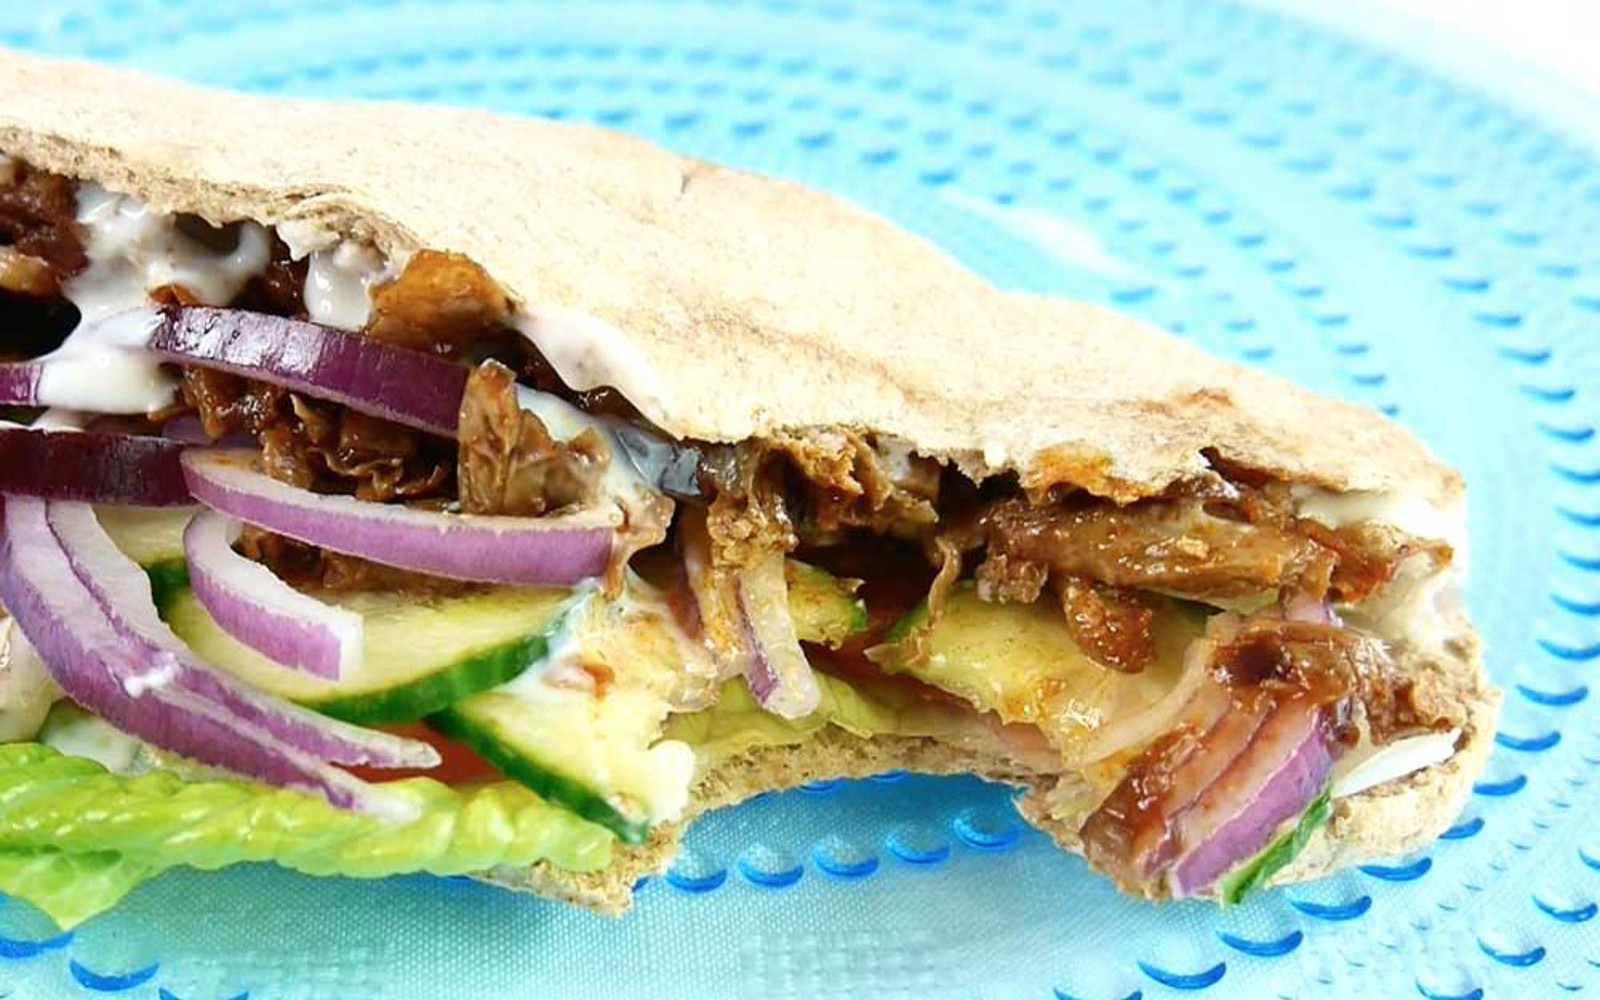 Braised Tofu Doner Kebab in Pita With Yogurt Sauce